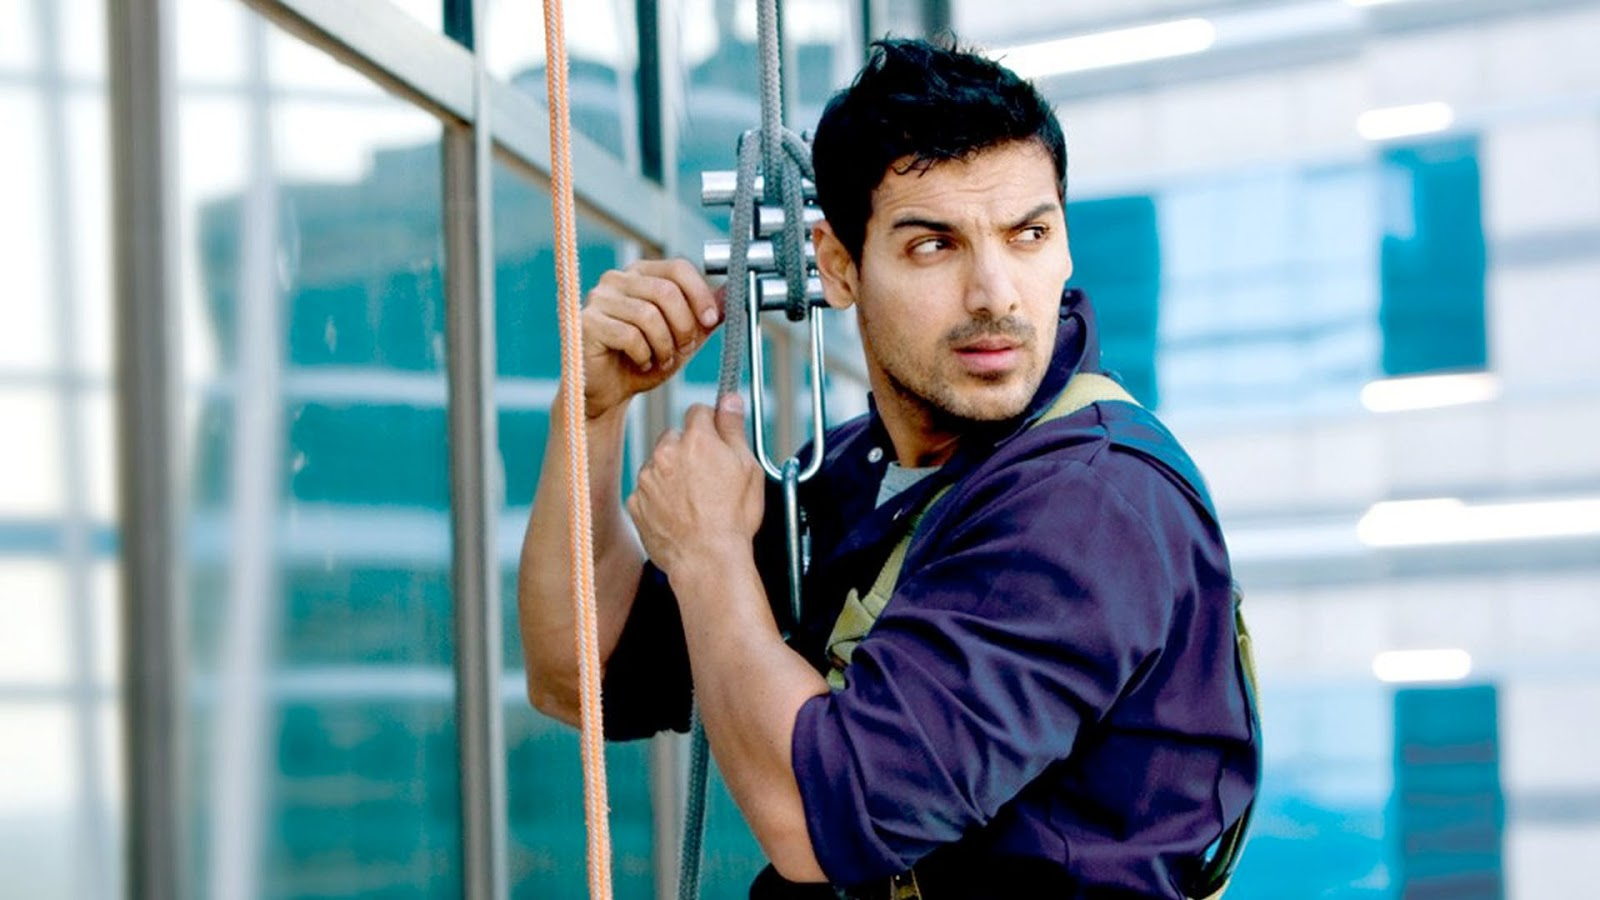 Hd wallpaper john abraham - John Abraham